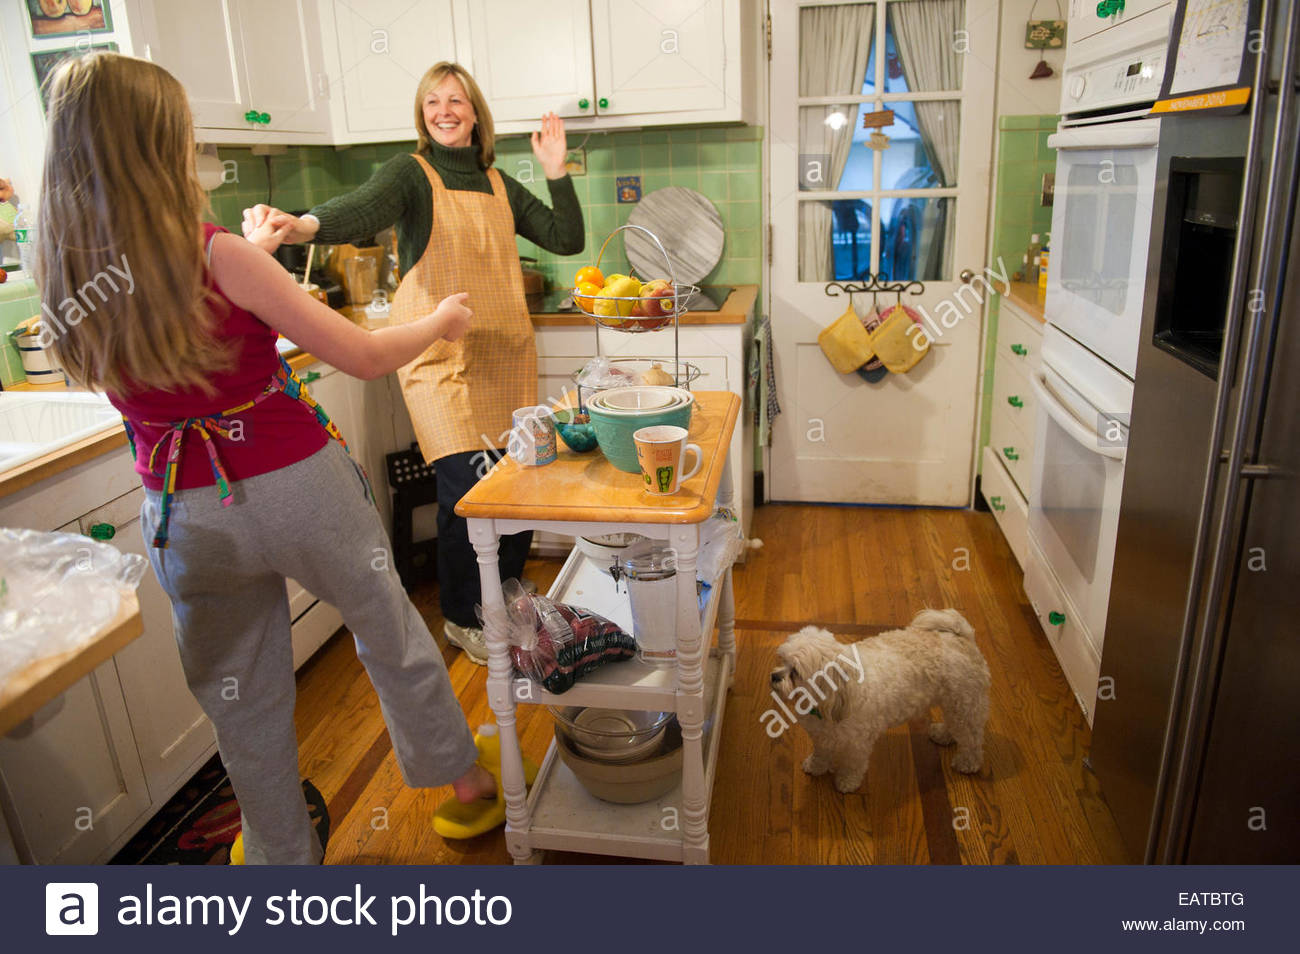 A mother and daughter dance in their kitchen